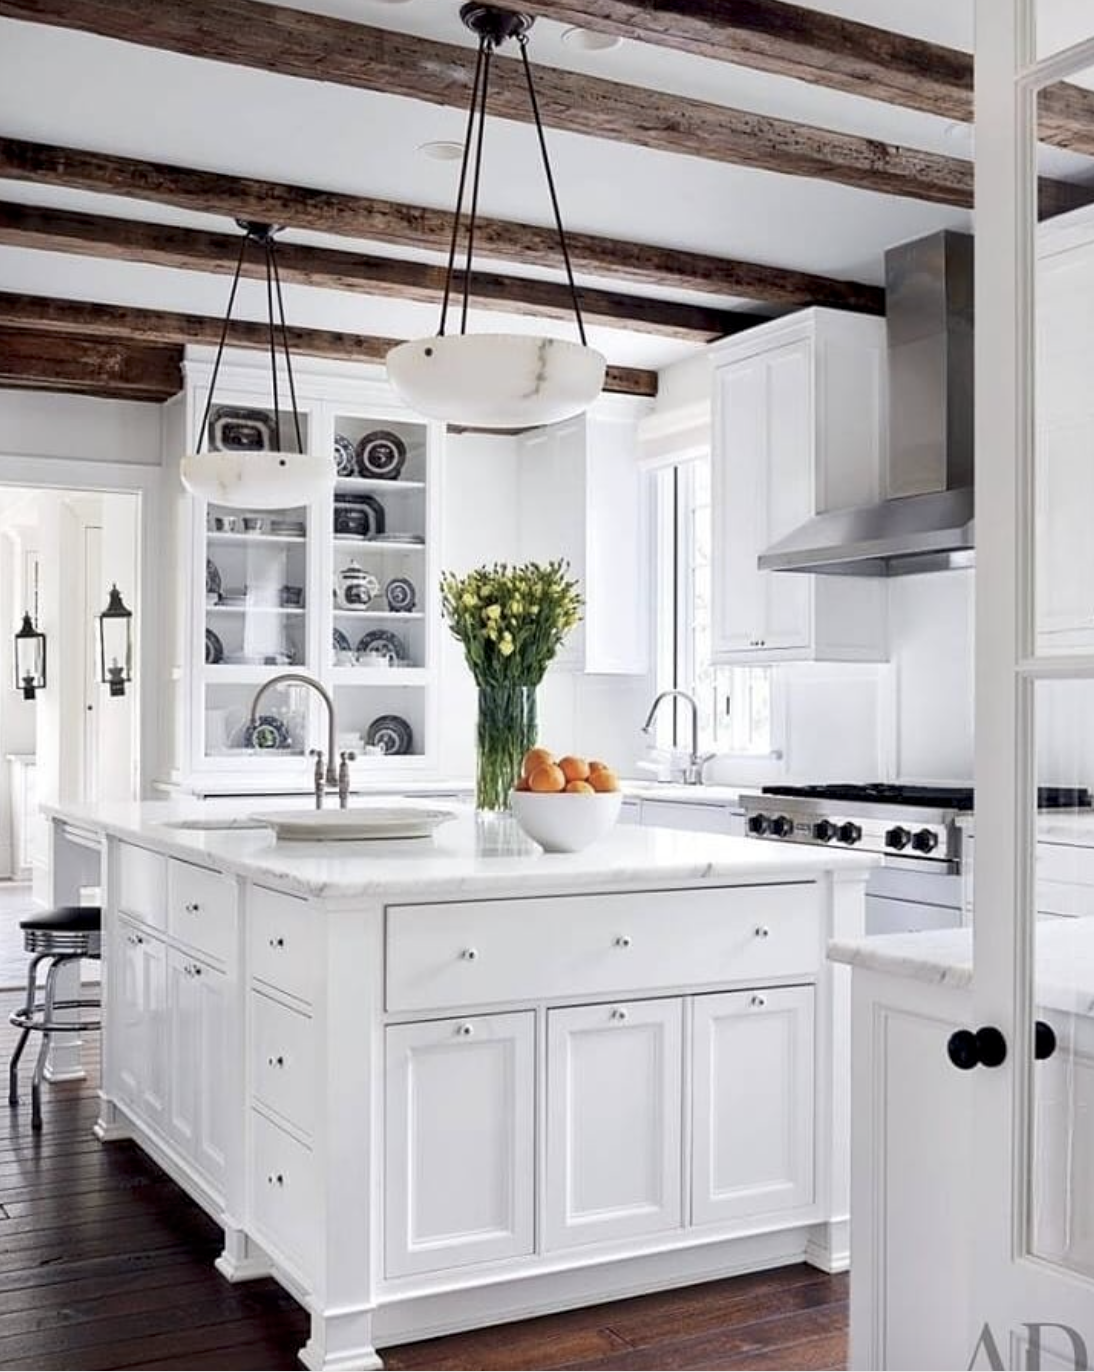 Hamptons Kitchens 22 Stunning Hamptons Kitchens You Will Love Art Deco